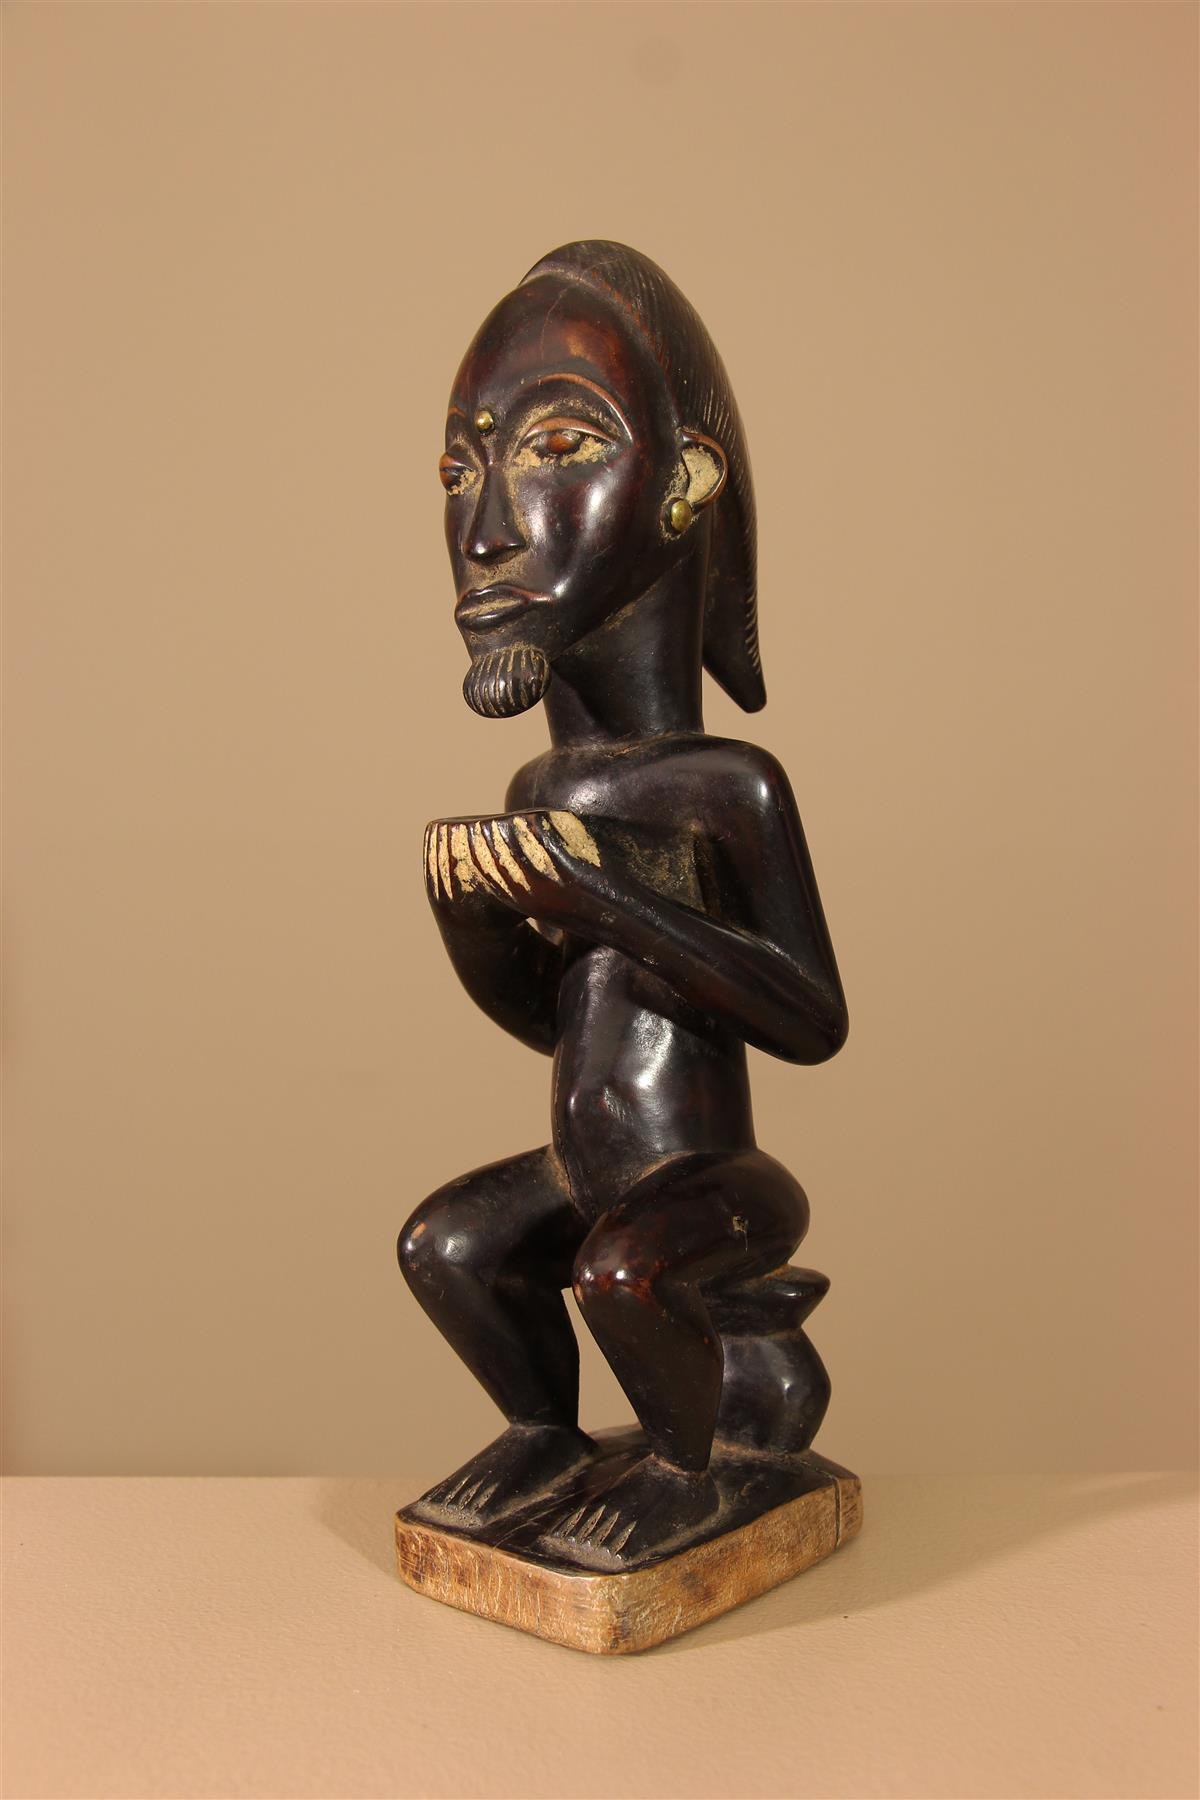 Statuette Baule - Déco africaine - Art africain traditionnel